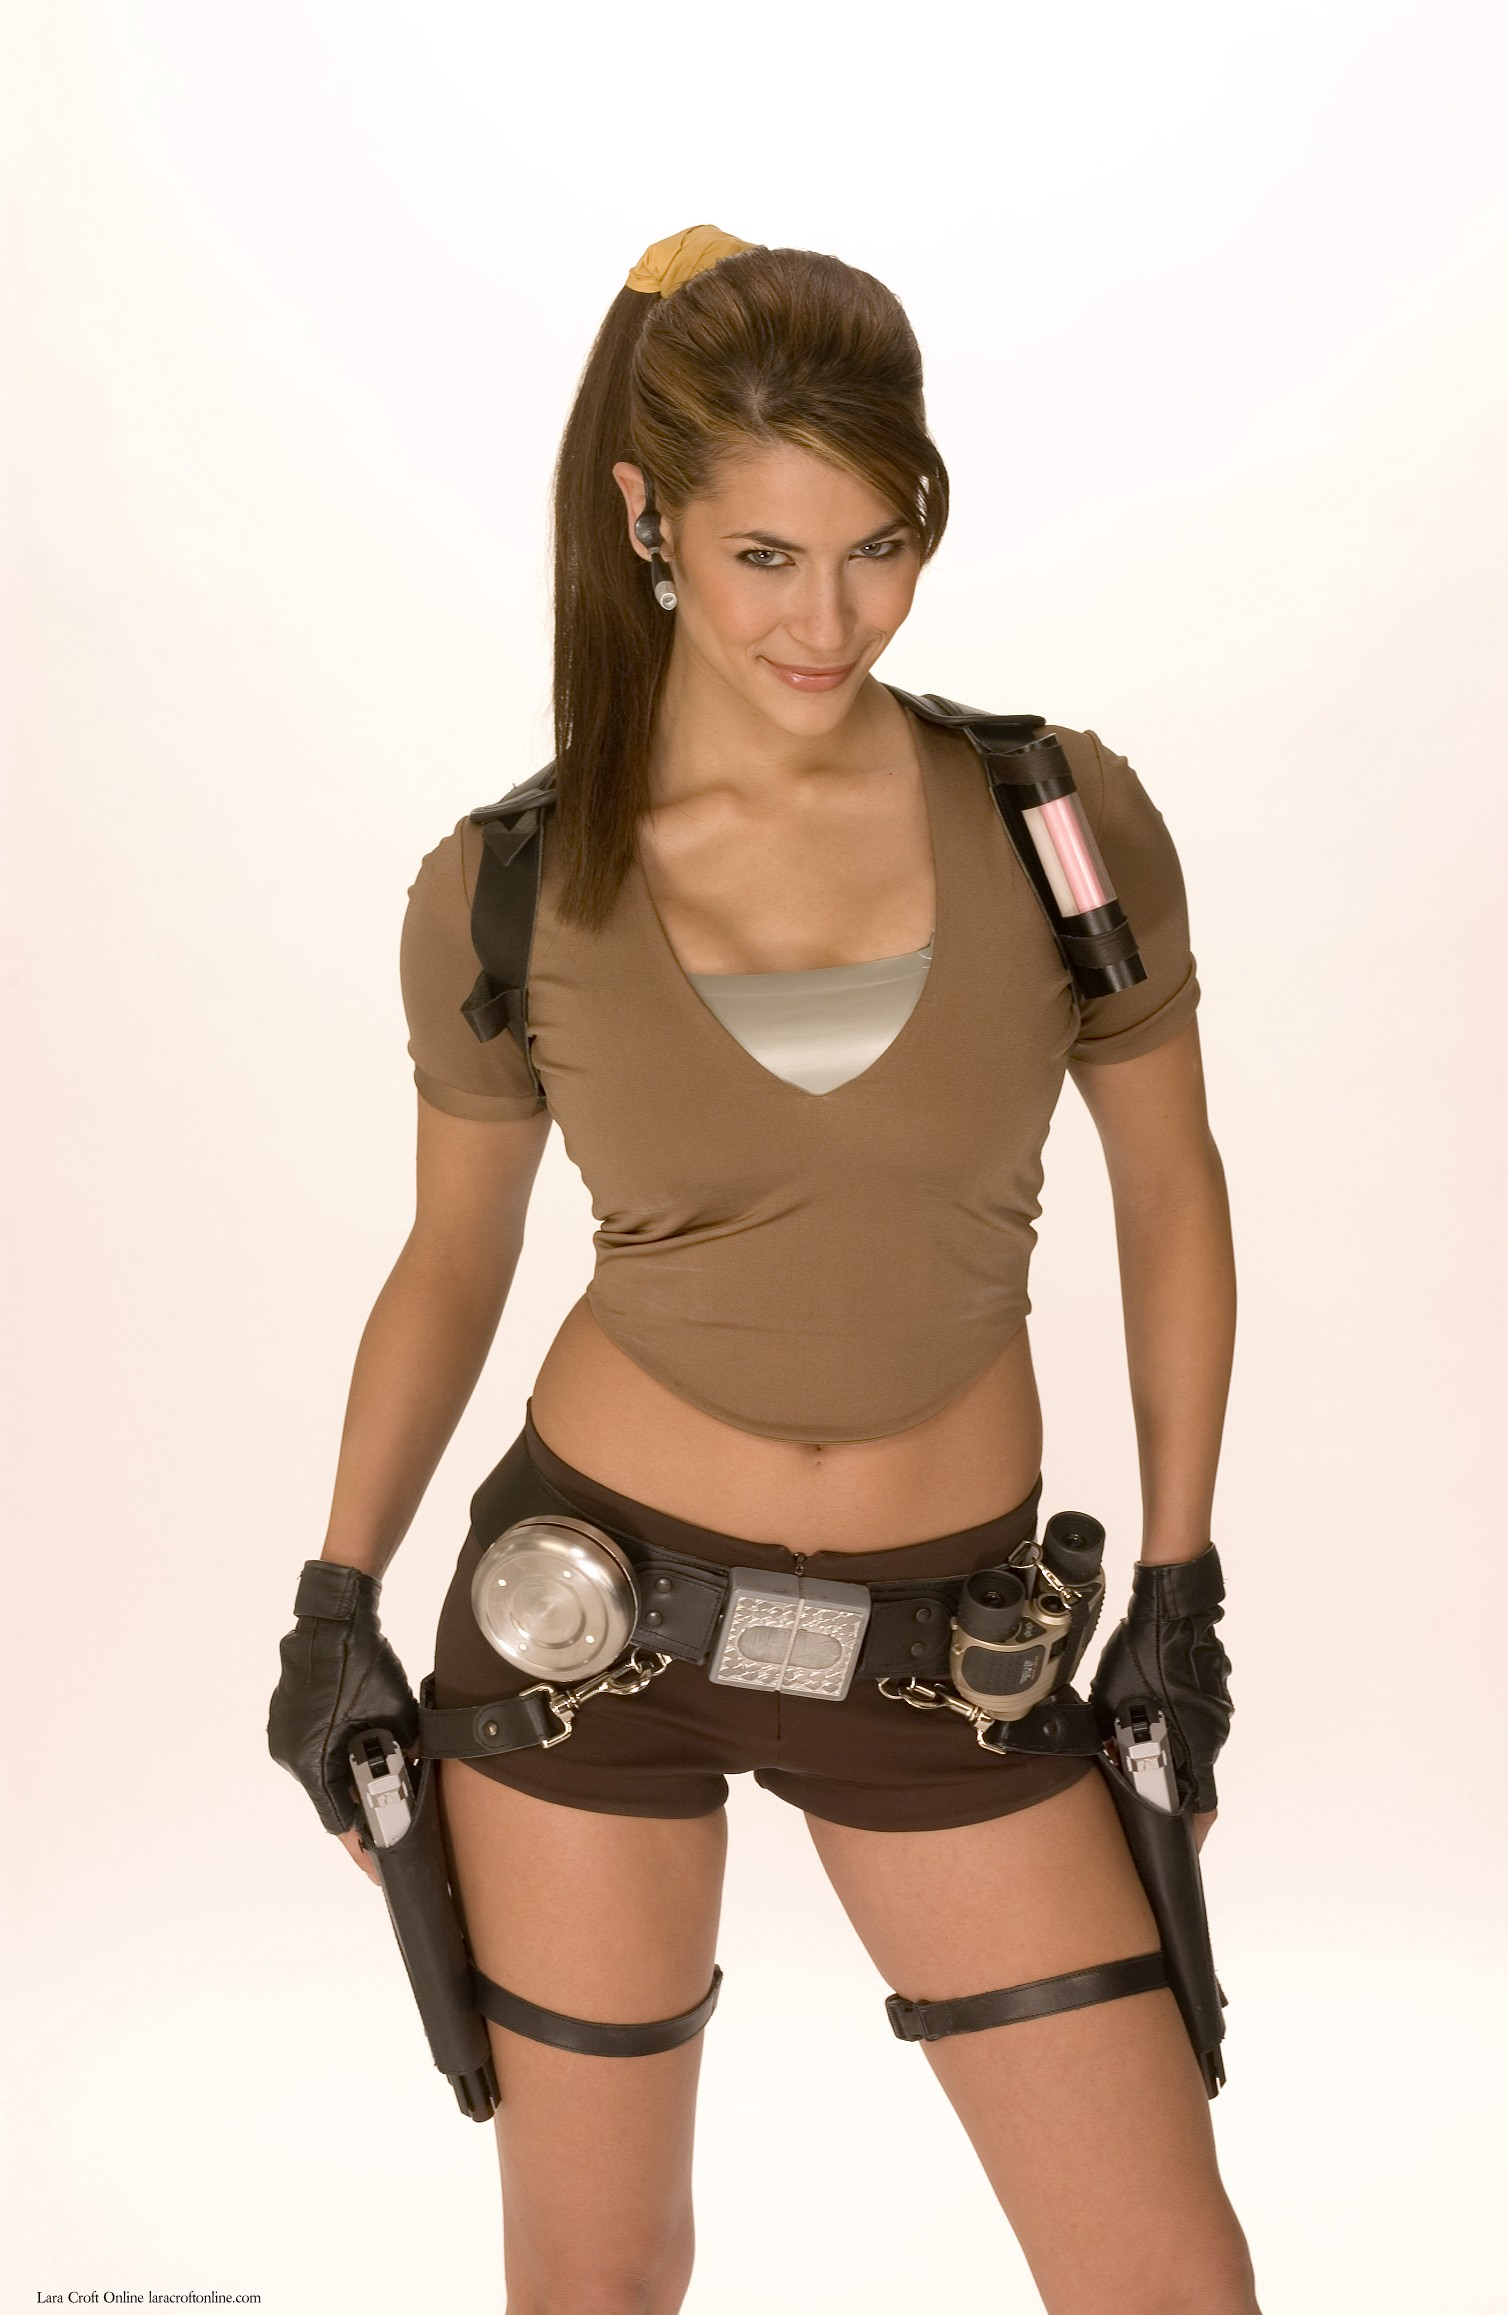 Assure Karima adebibe tomb raider seems, will